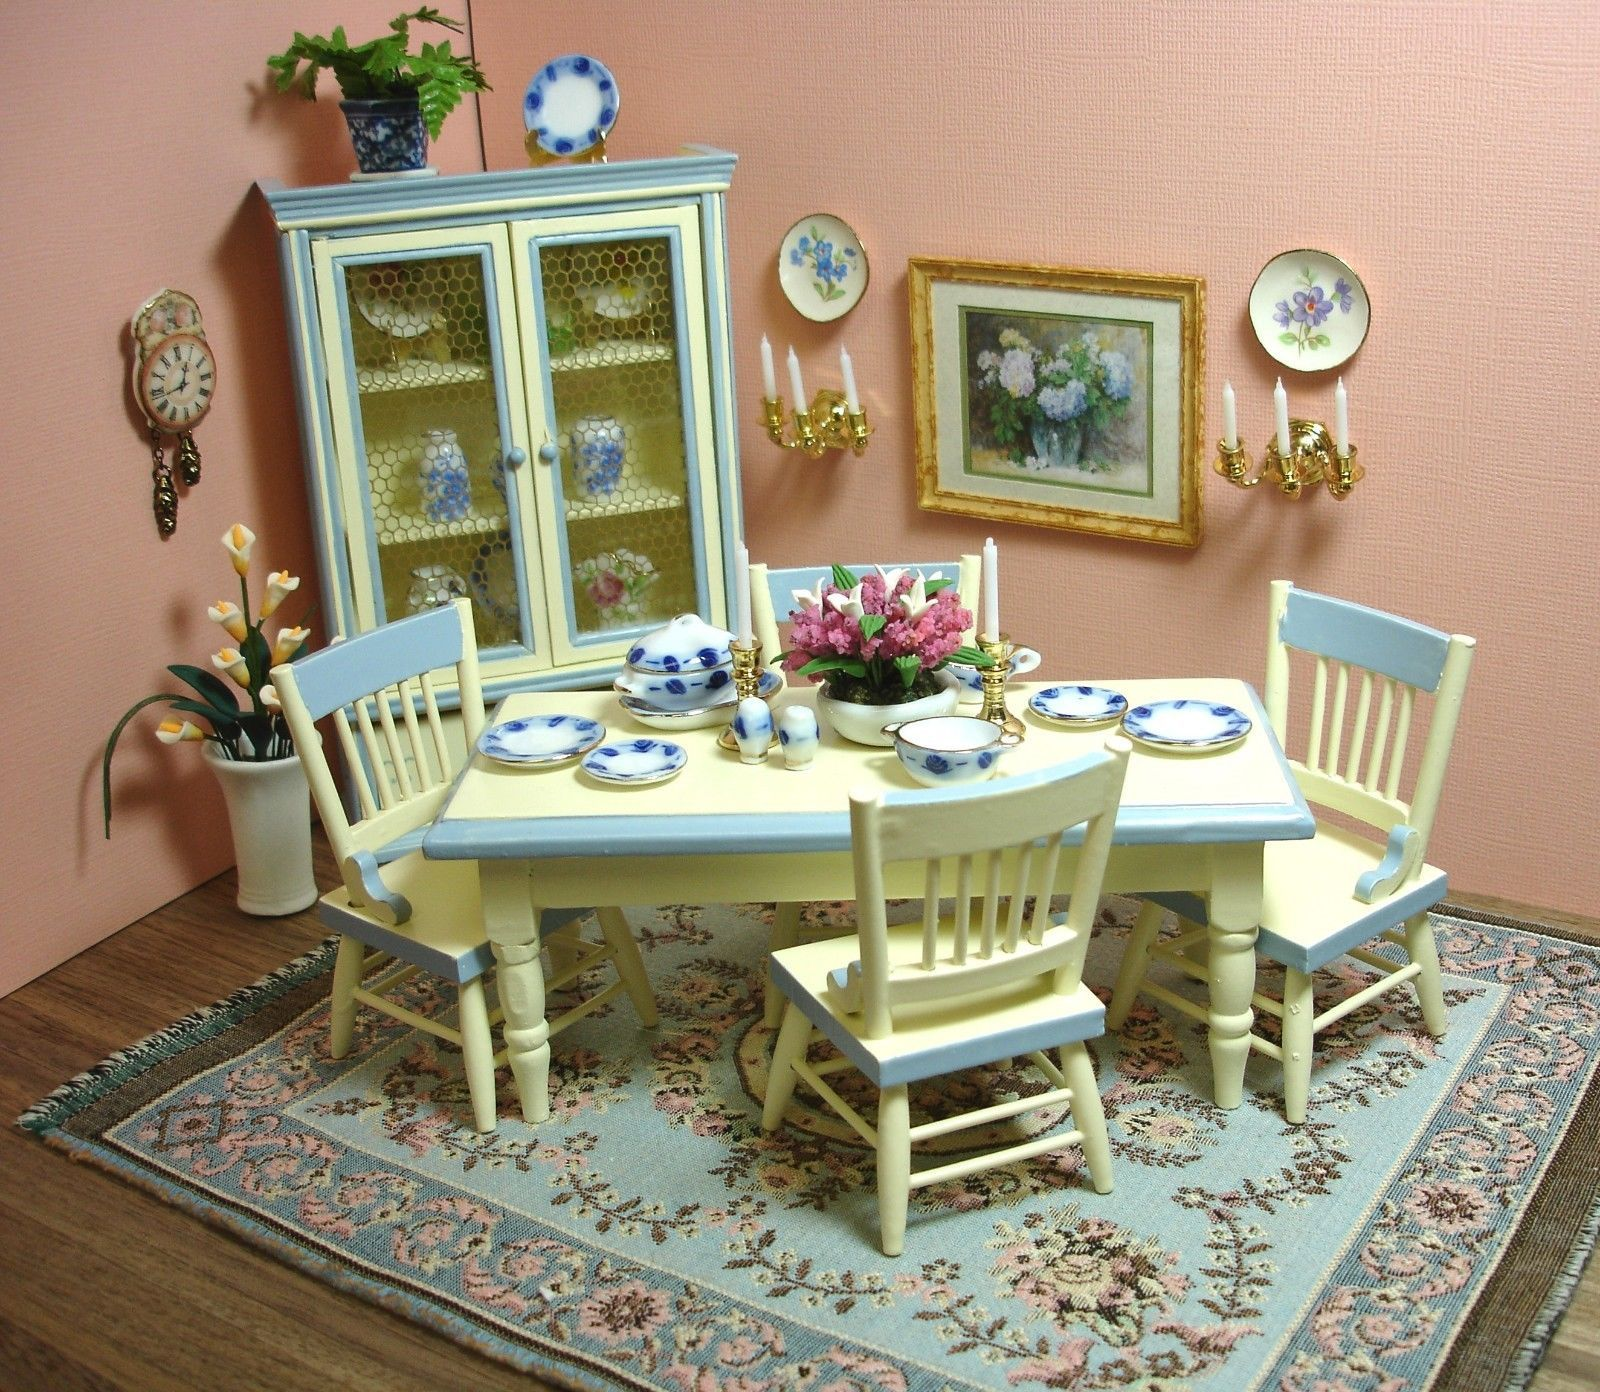 Mini Kitchen Room Box: Details About 1980s Mini Miniature Dollhouse Furniture